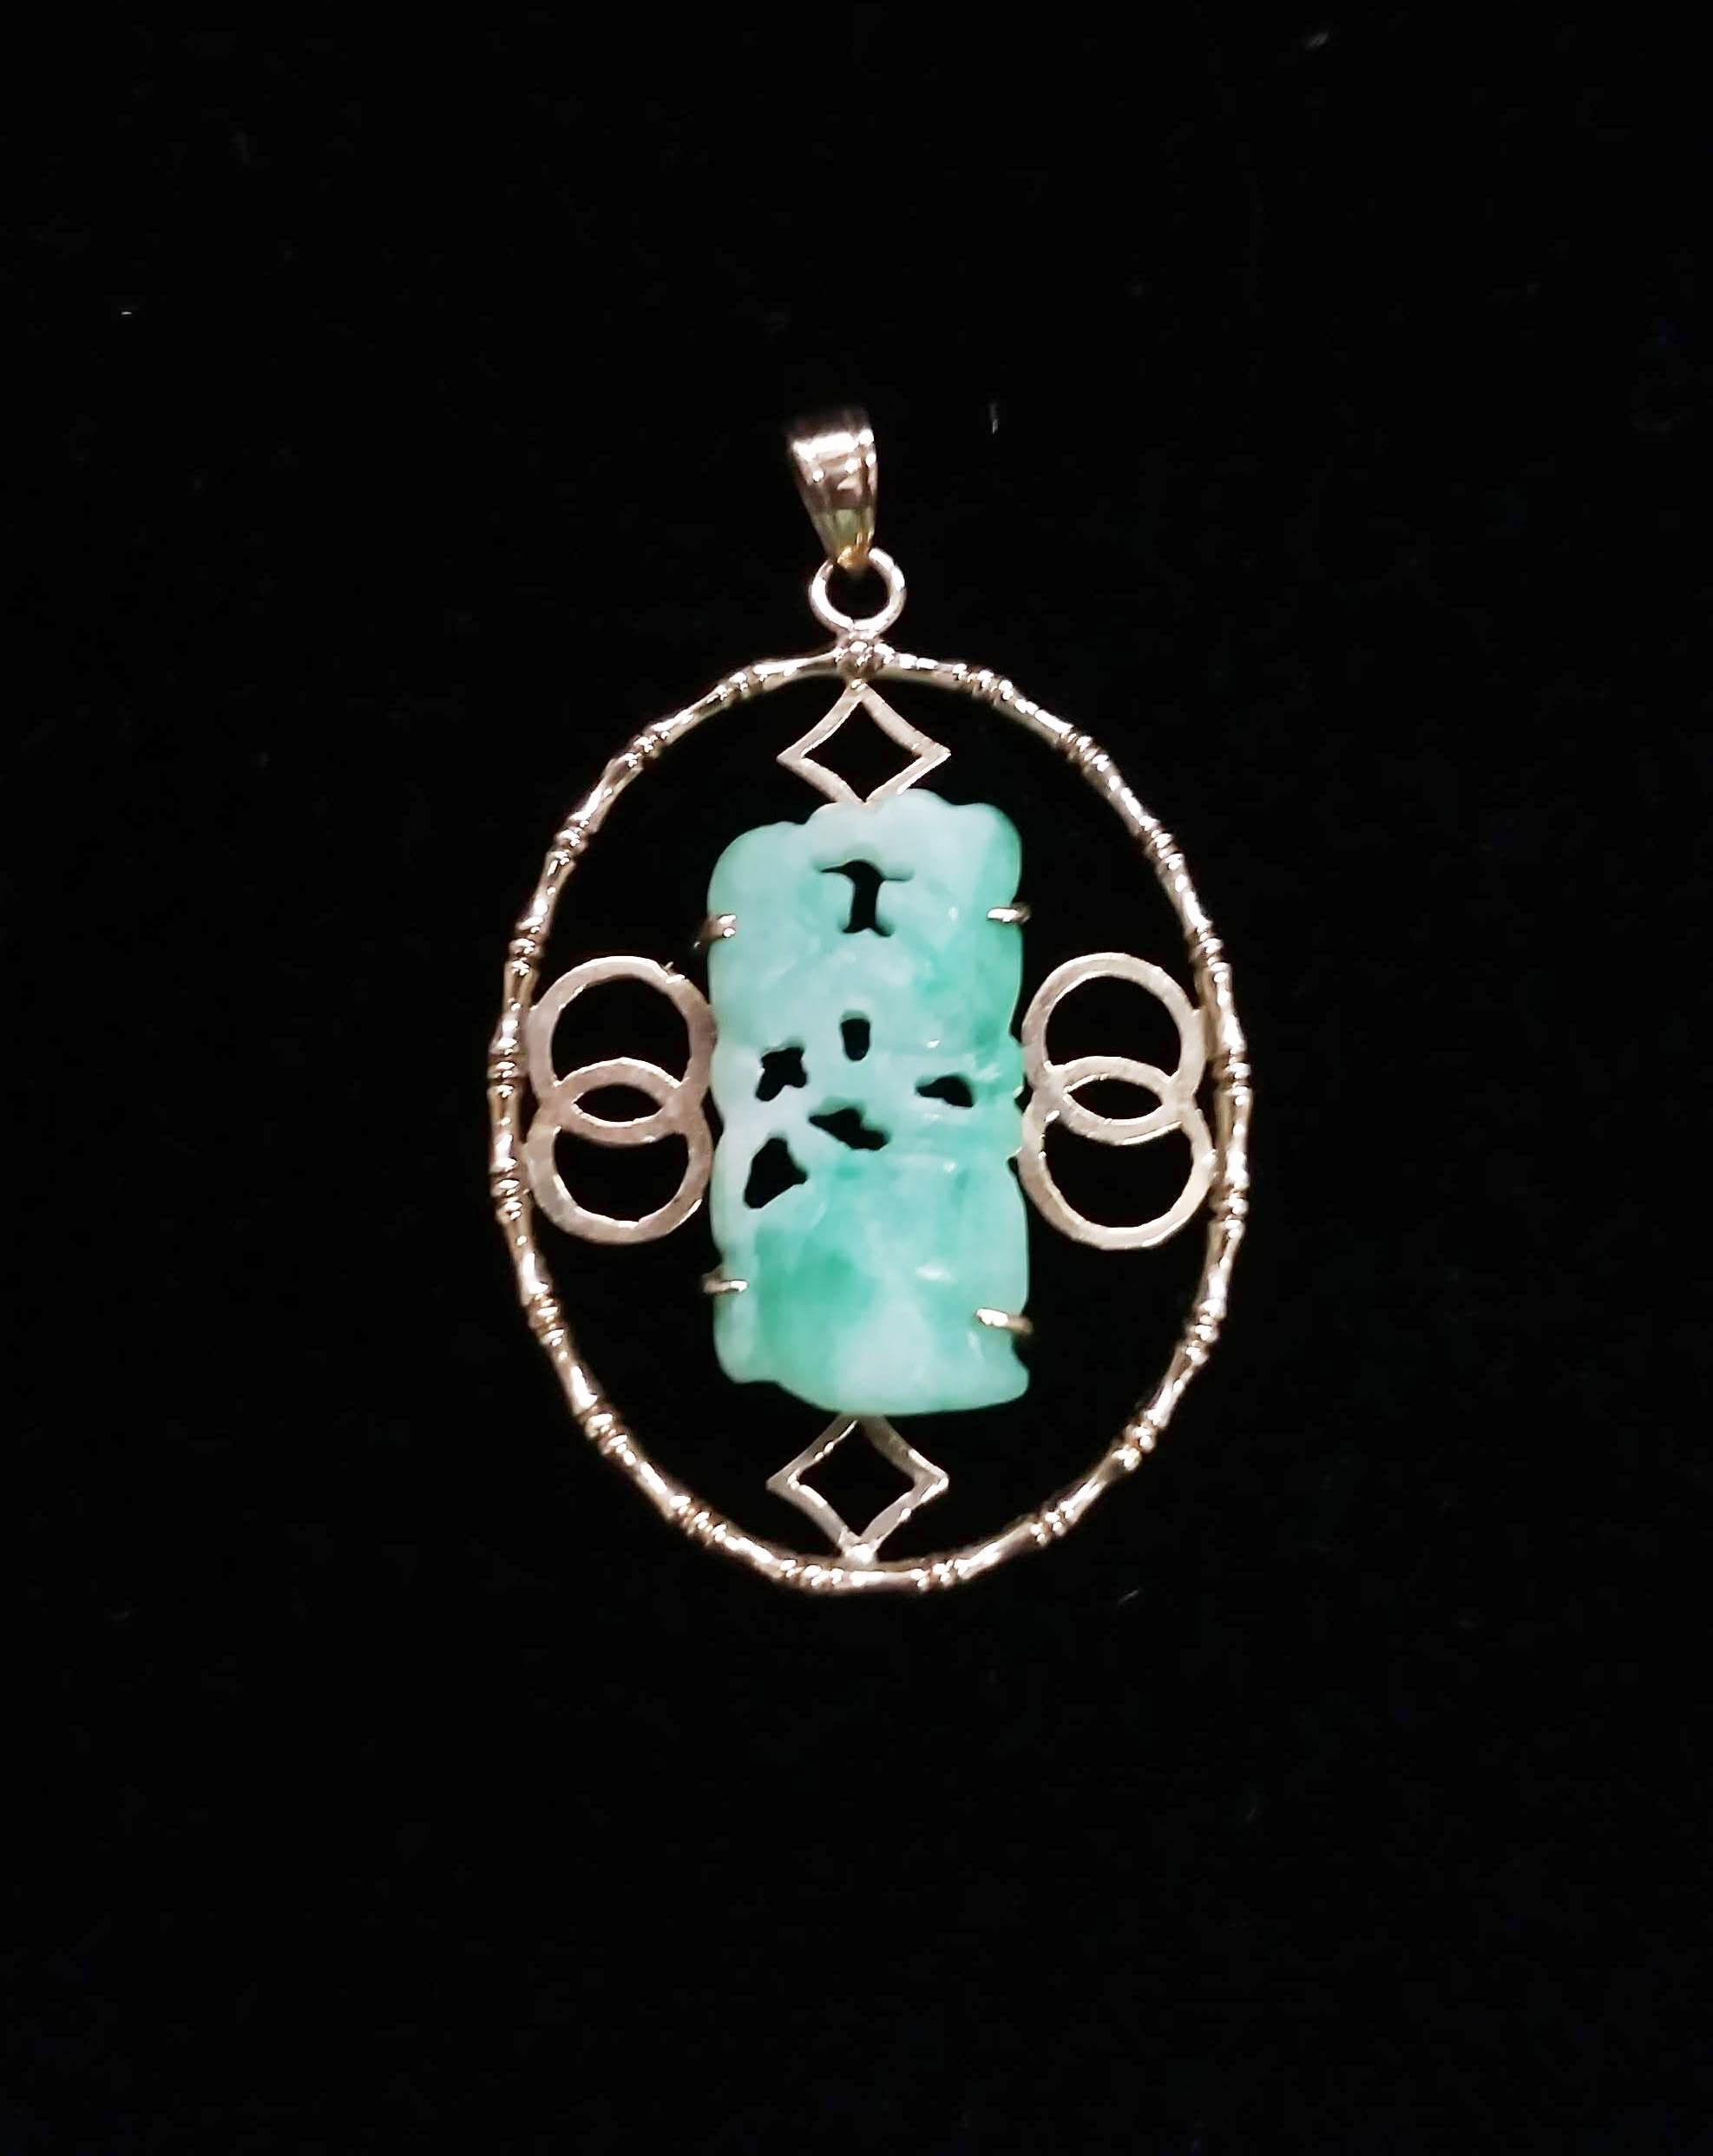 14kt Yellow Gold Oval Shape Pendant with 4.74 Carat Carved Jade Center